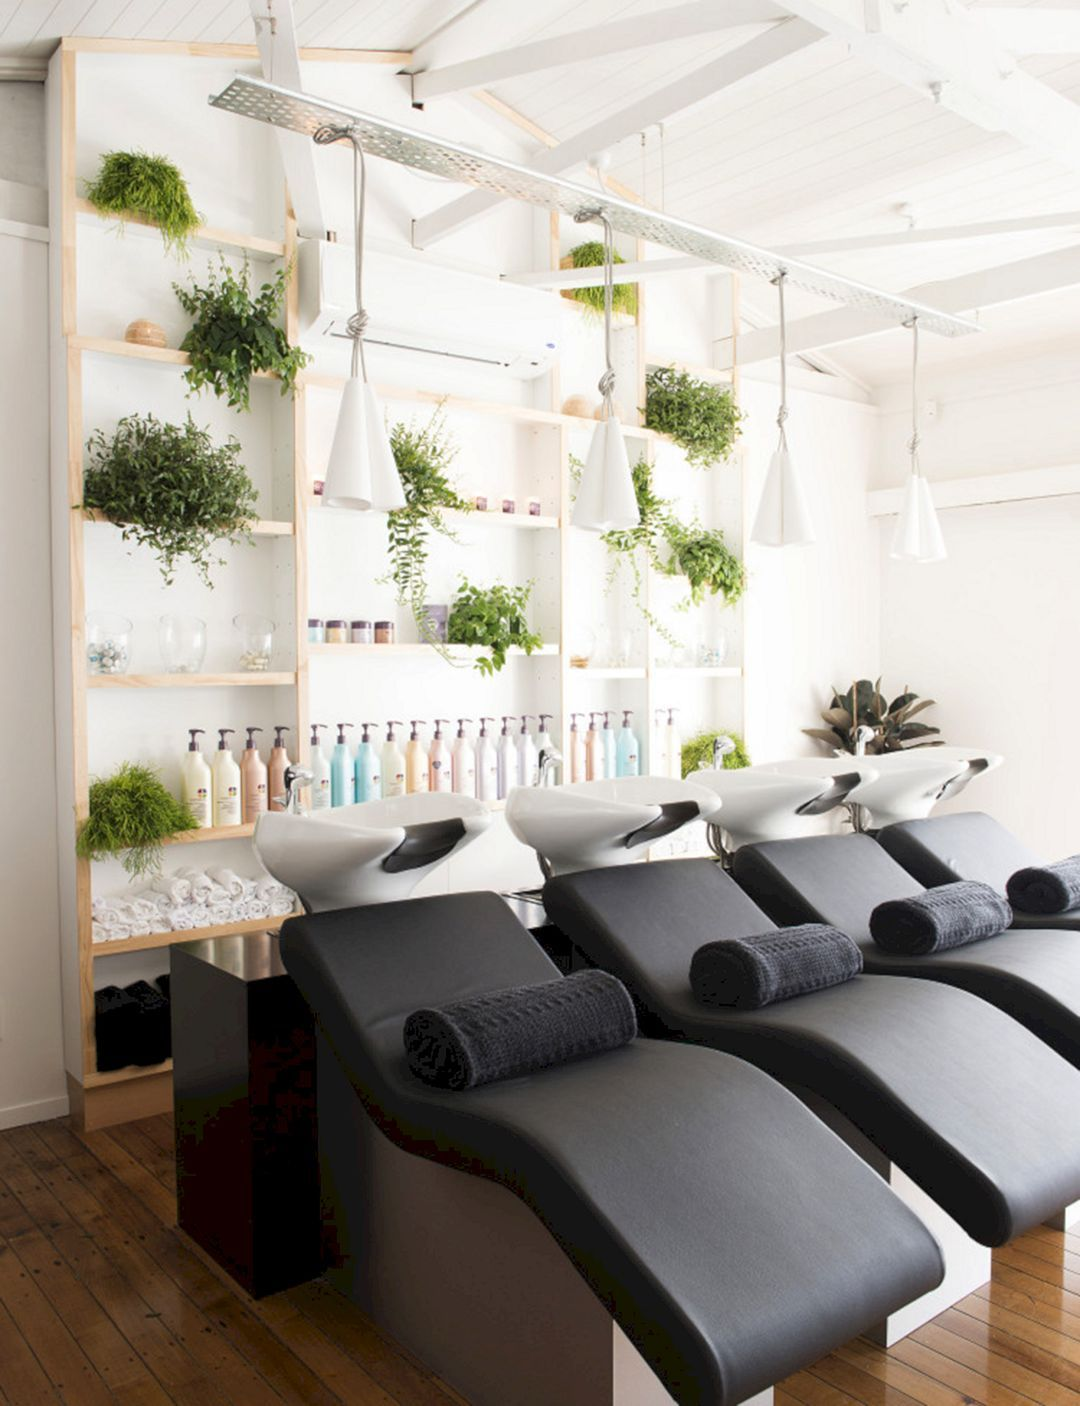 20+ Best Home Salon Decor Ideas For Private Salon On Your Home